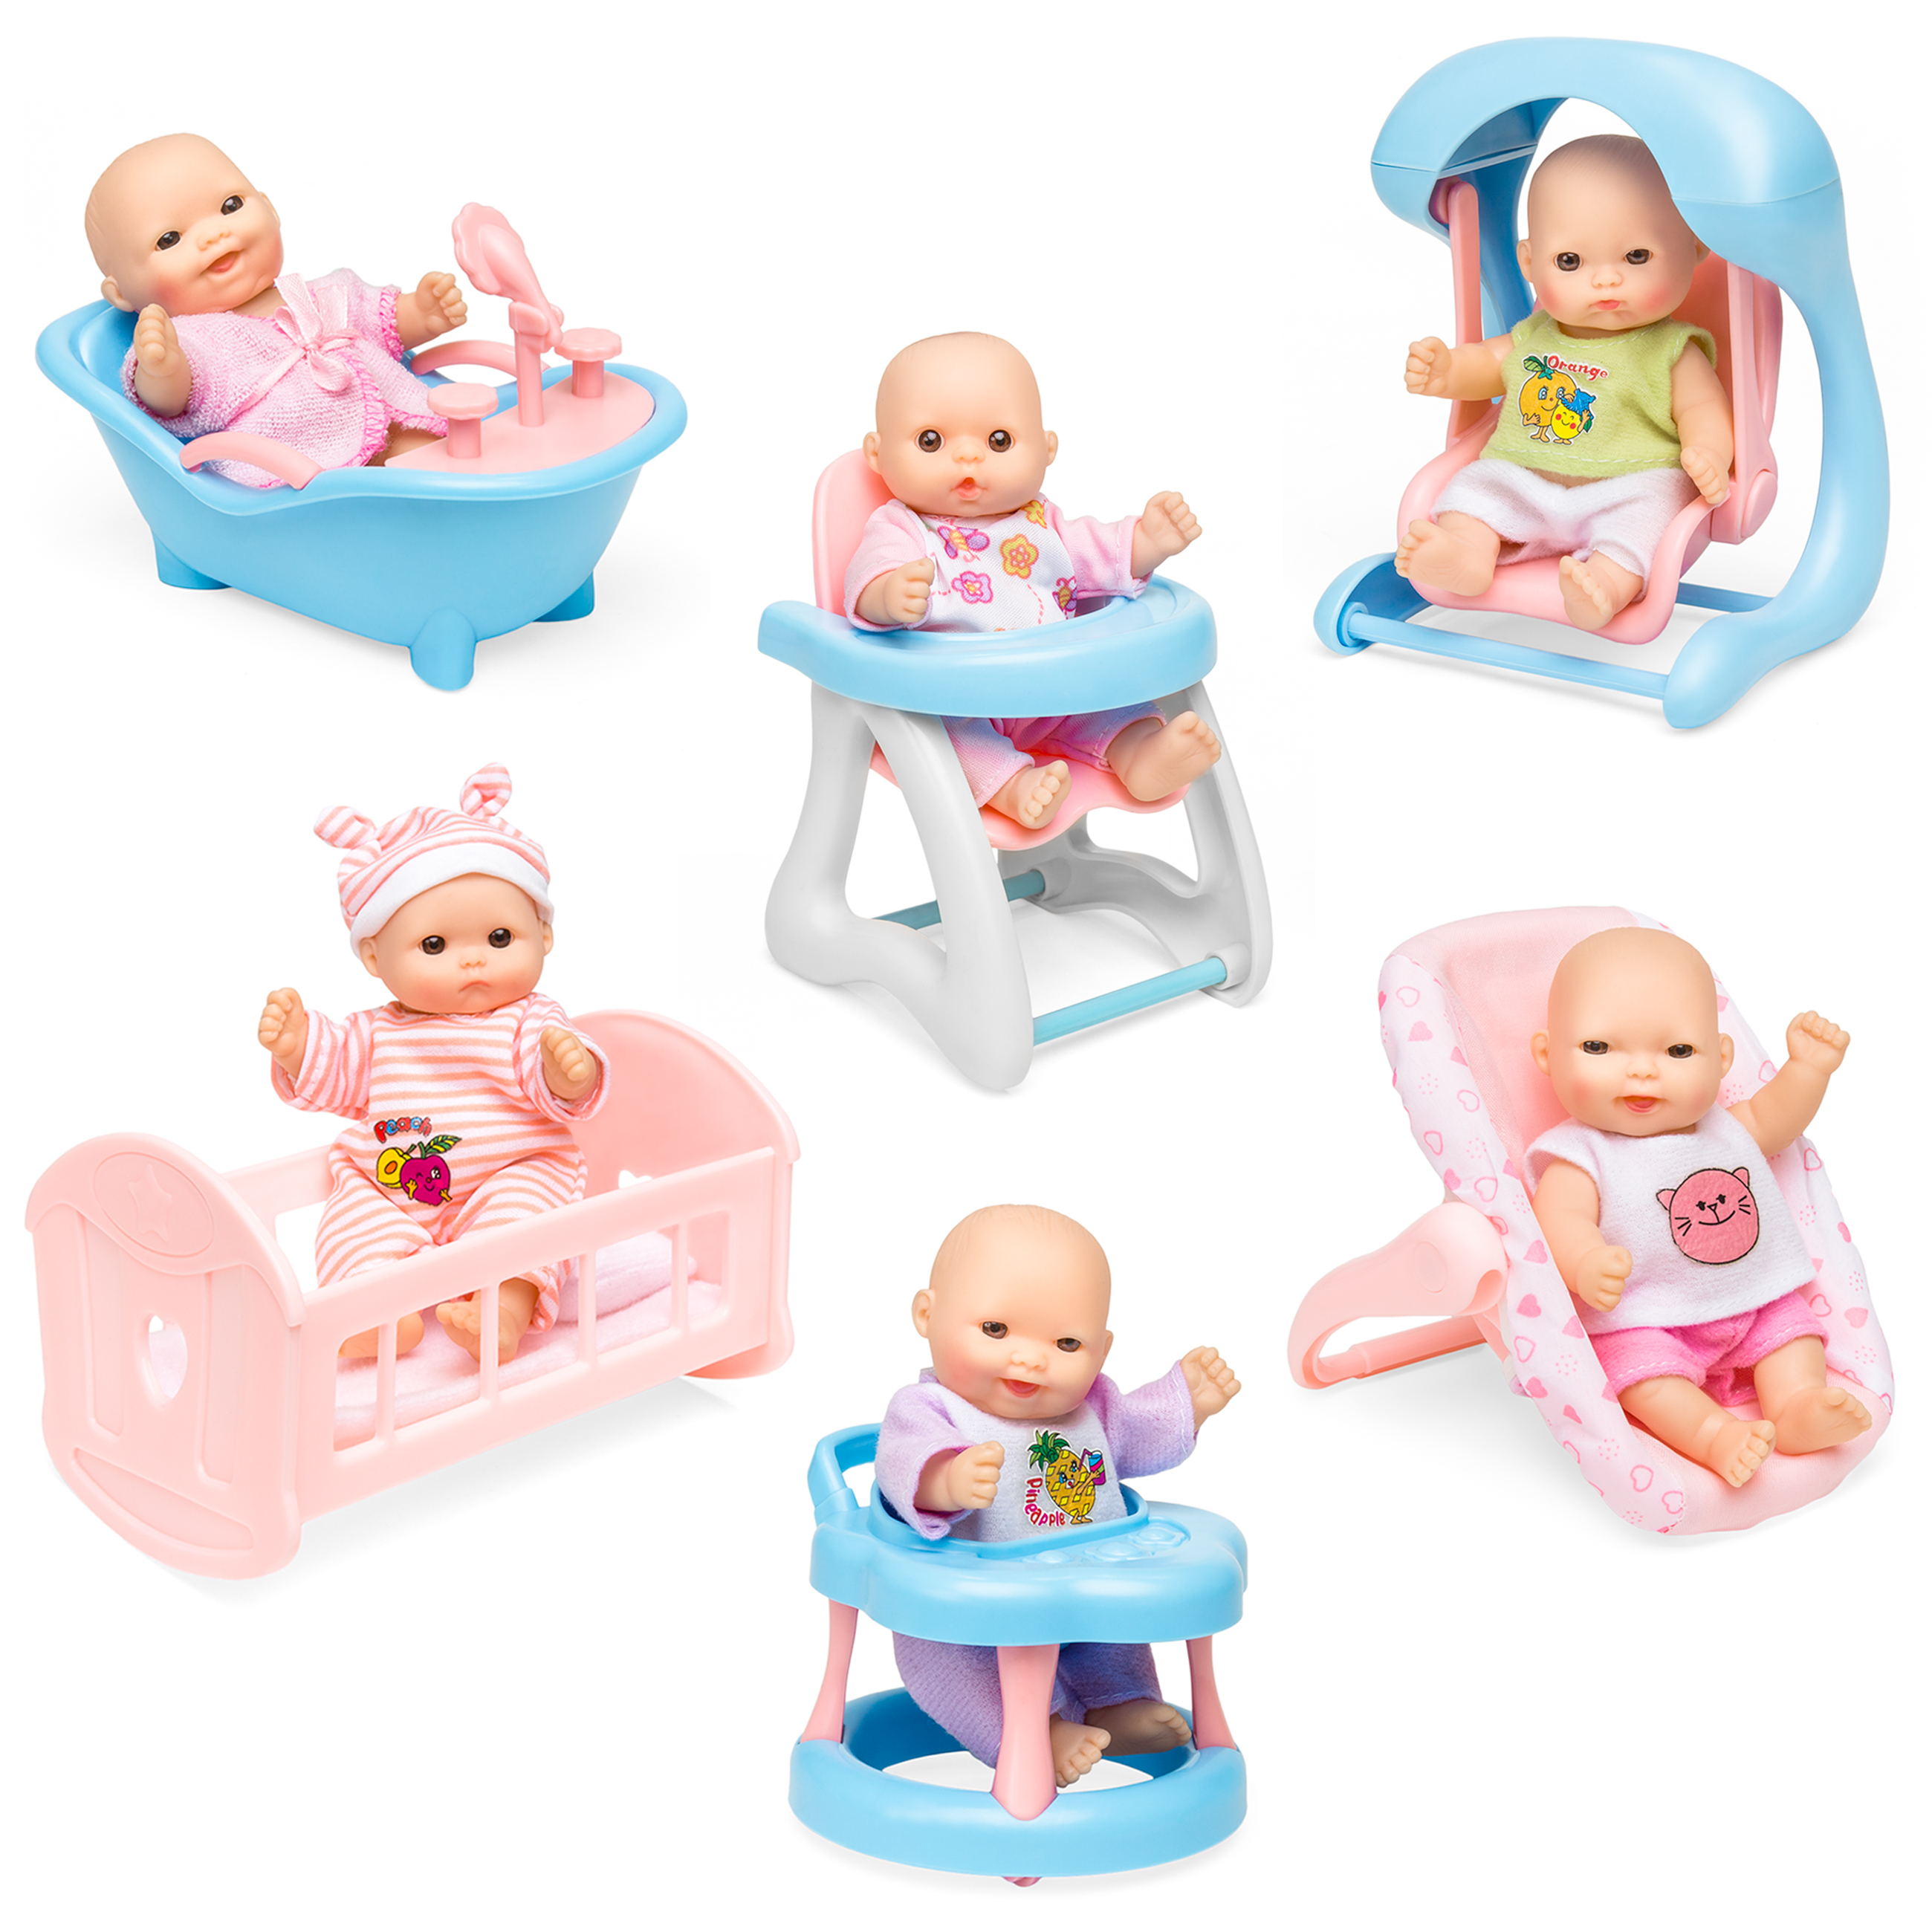 Best Choice Products Set of 6 Mini Baby Dolls Toy w/ Cradle, High Chair, Walker, Swing, Bathtub, Infant Seat